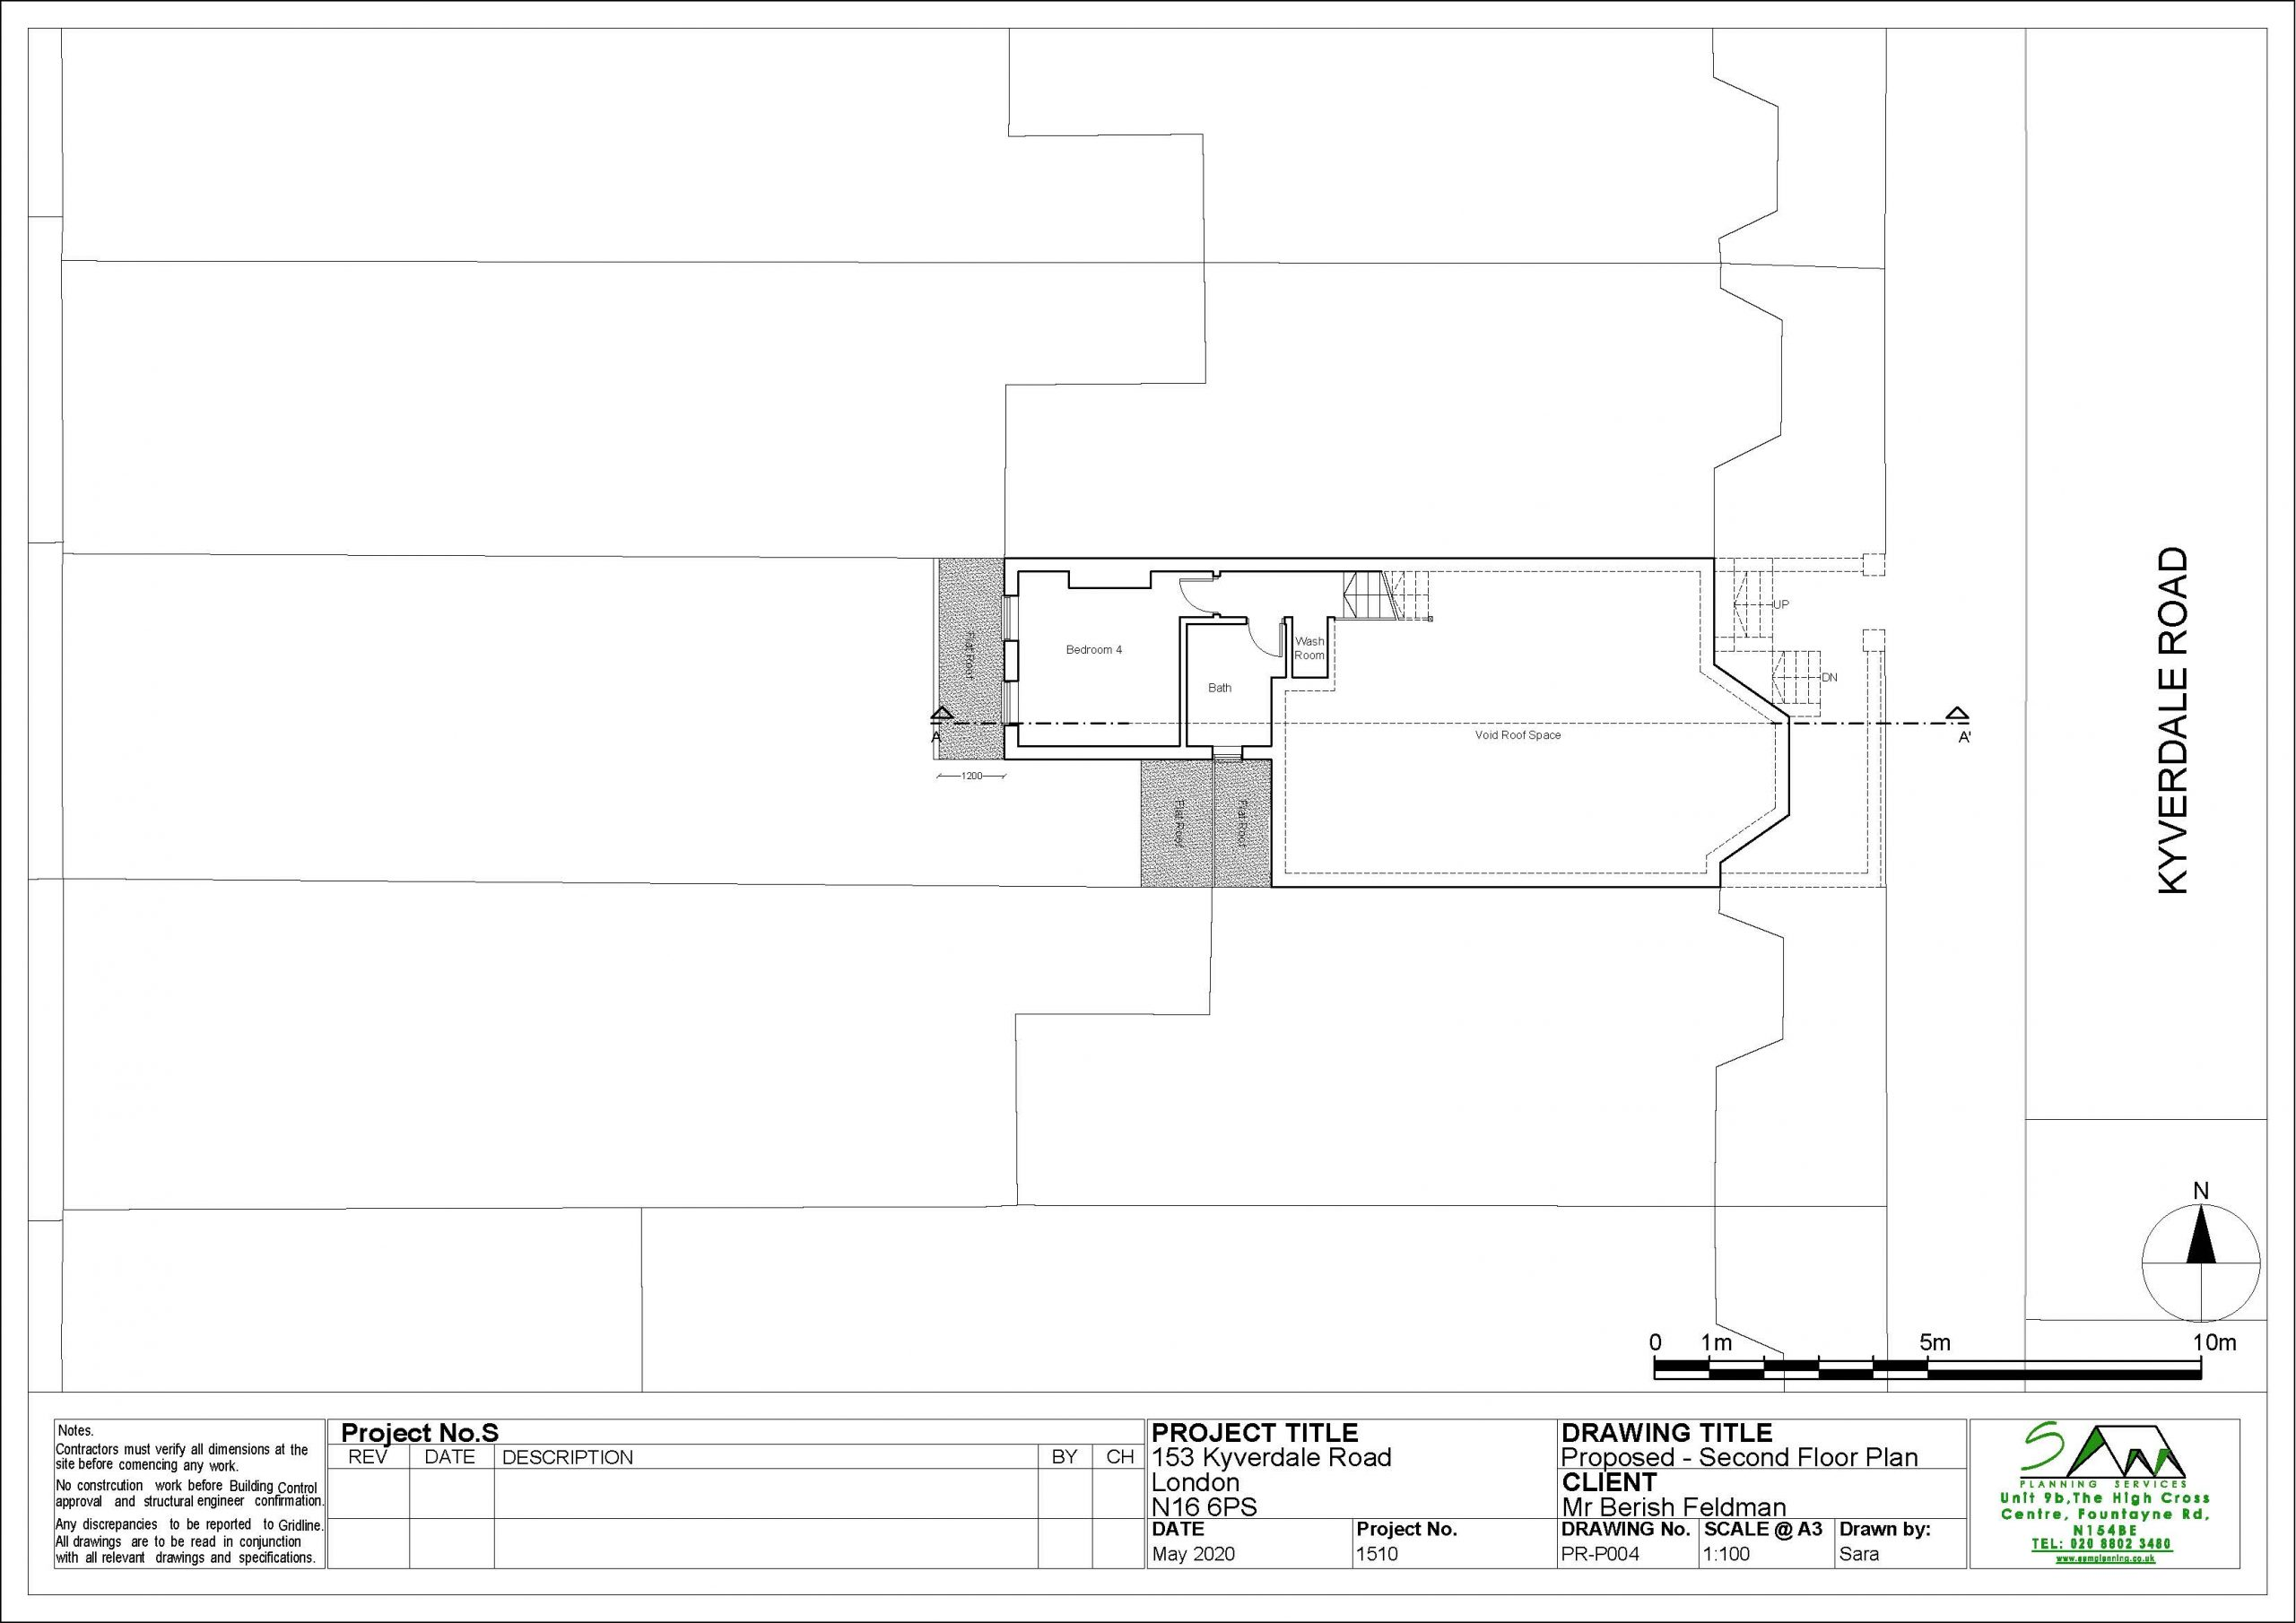 153kyverdaleProposed Second Floor Plan